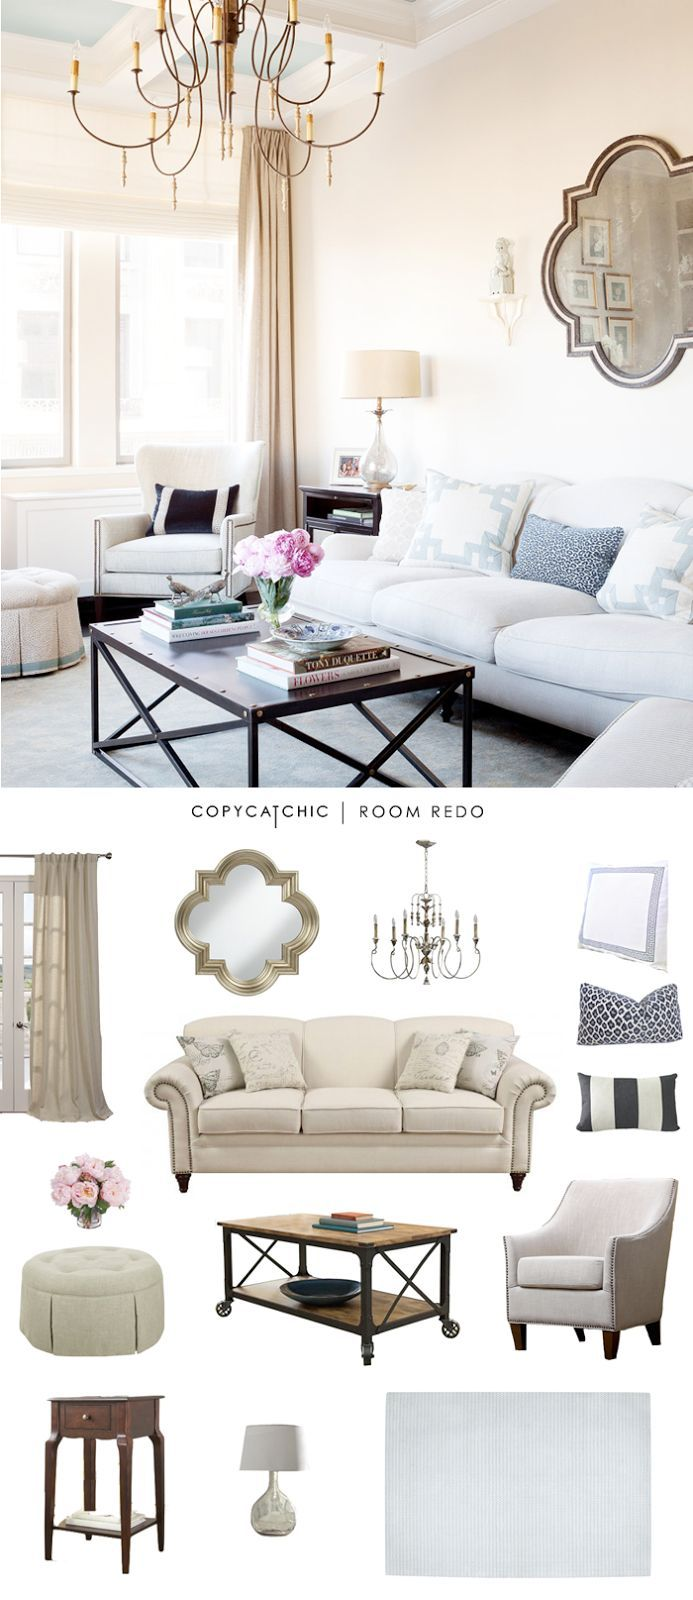 Copy Cat Chic: Copy Cat Chic Room Redo | Airy & Feminine Living Room by @audreycyder